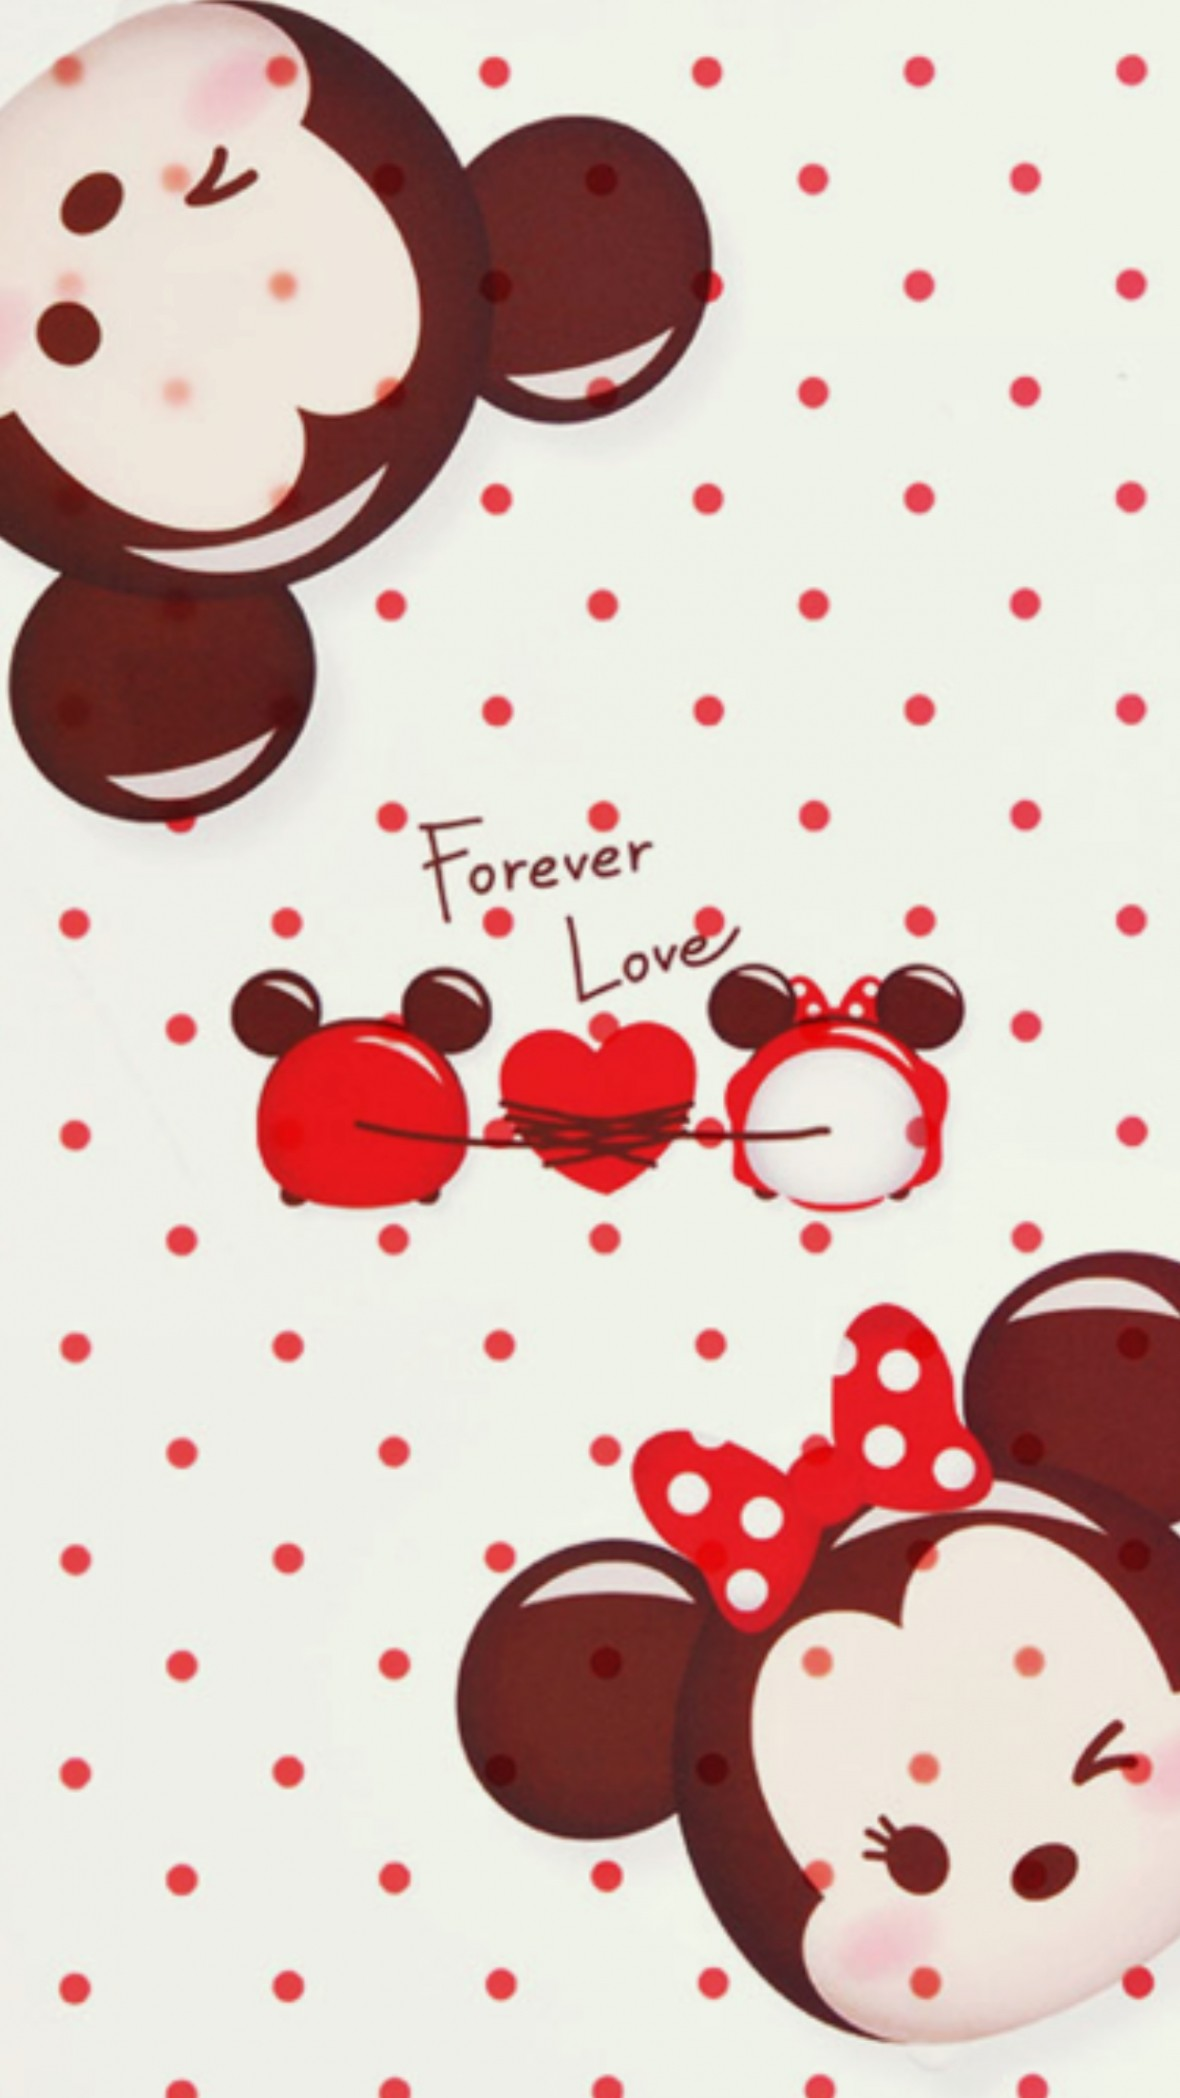 Mickey and minnie mouse wallpapers wallpapertag - Minnie mouse wallpaper pinterest ...